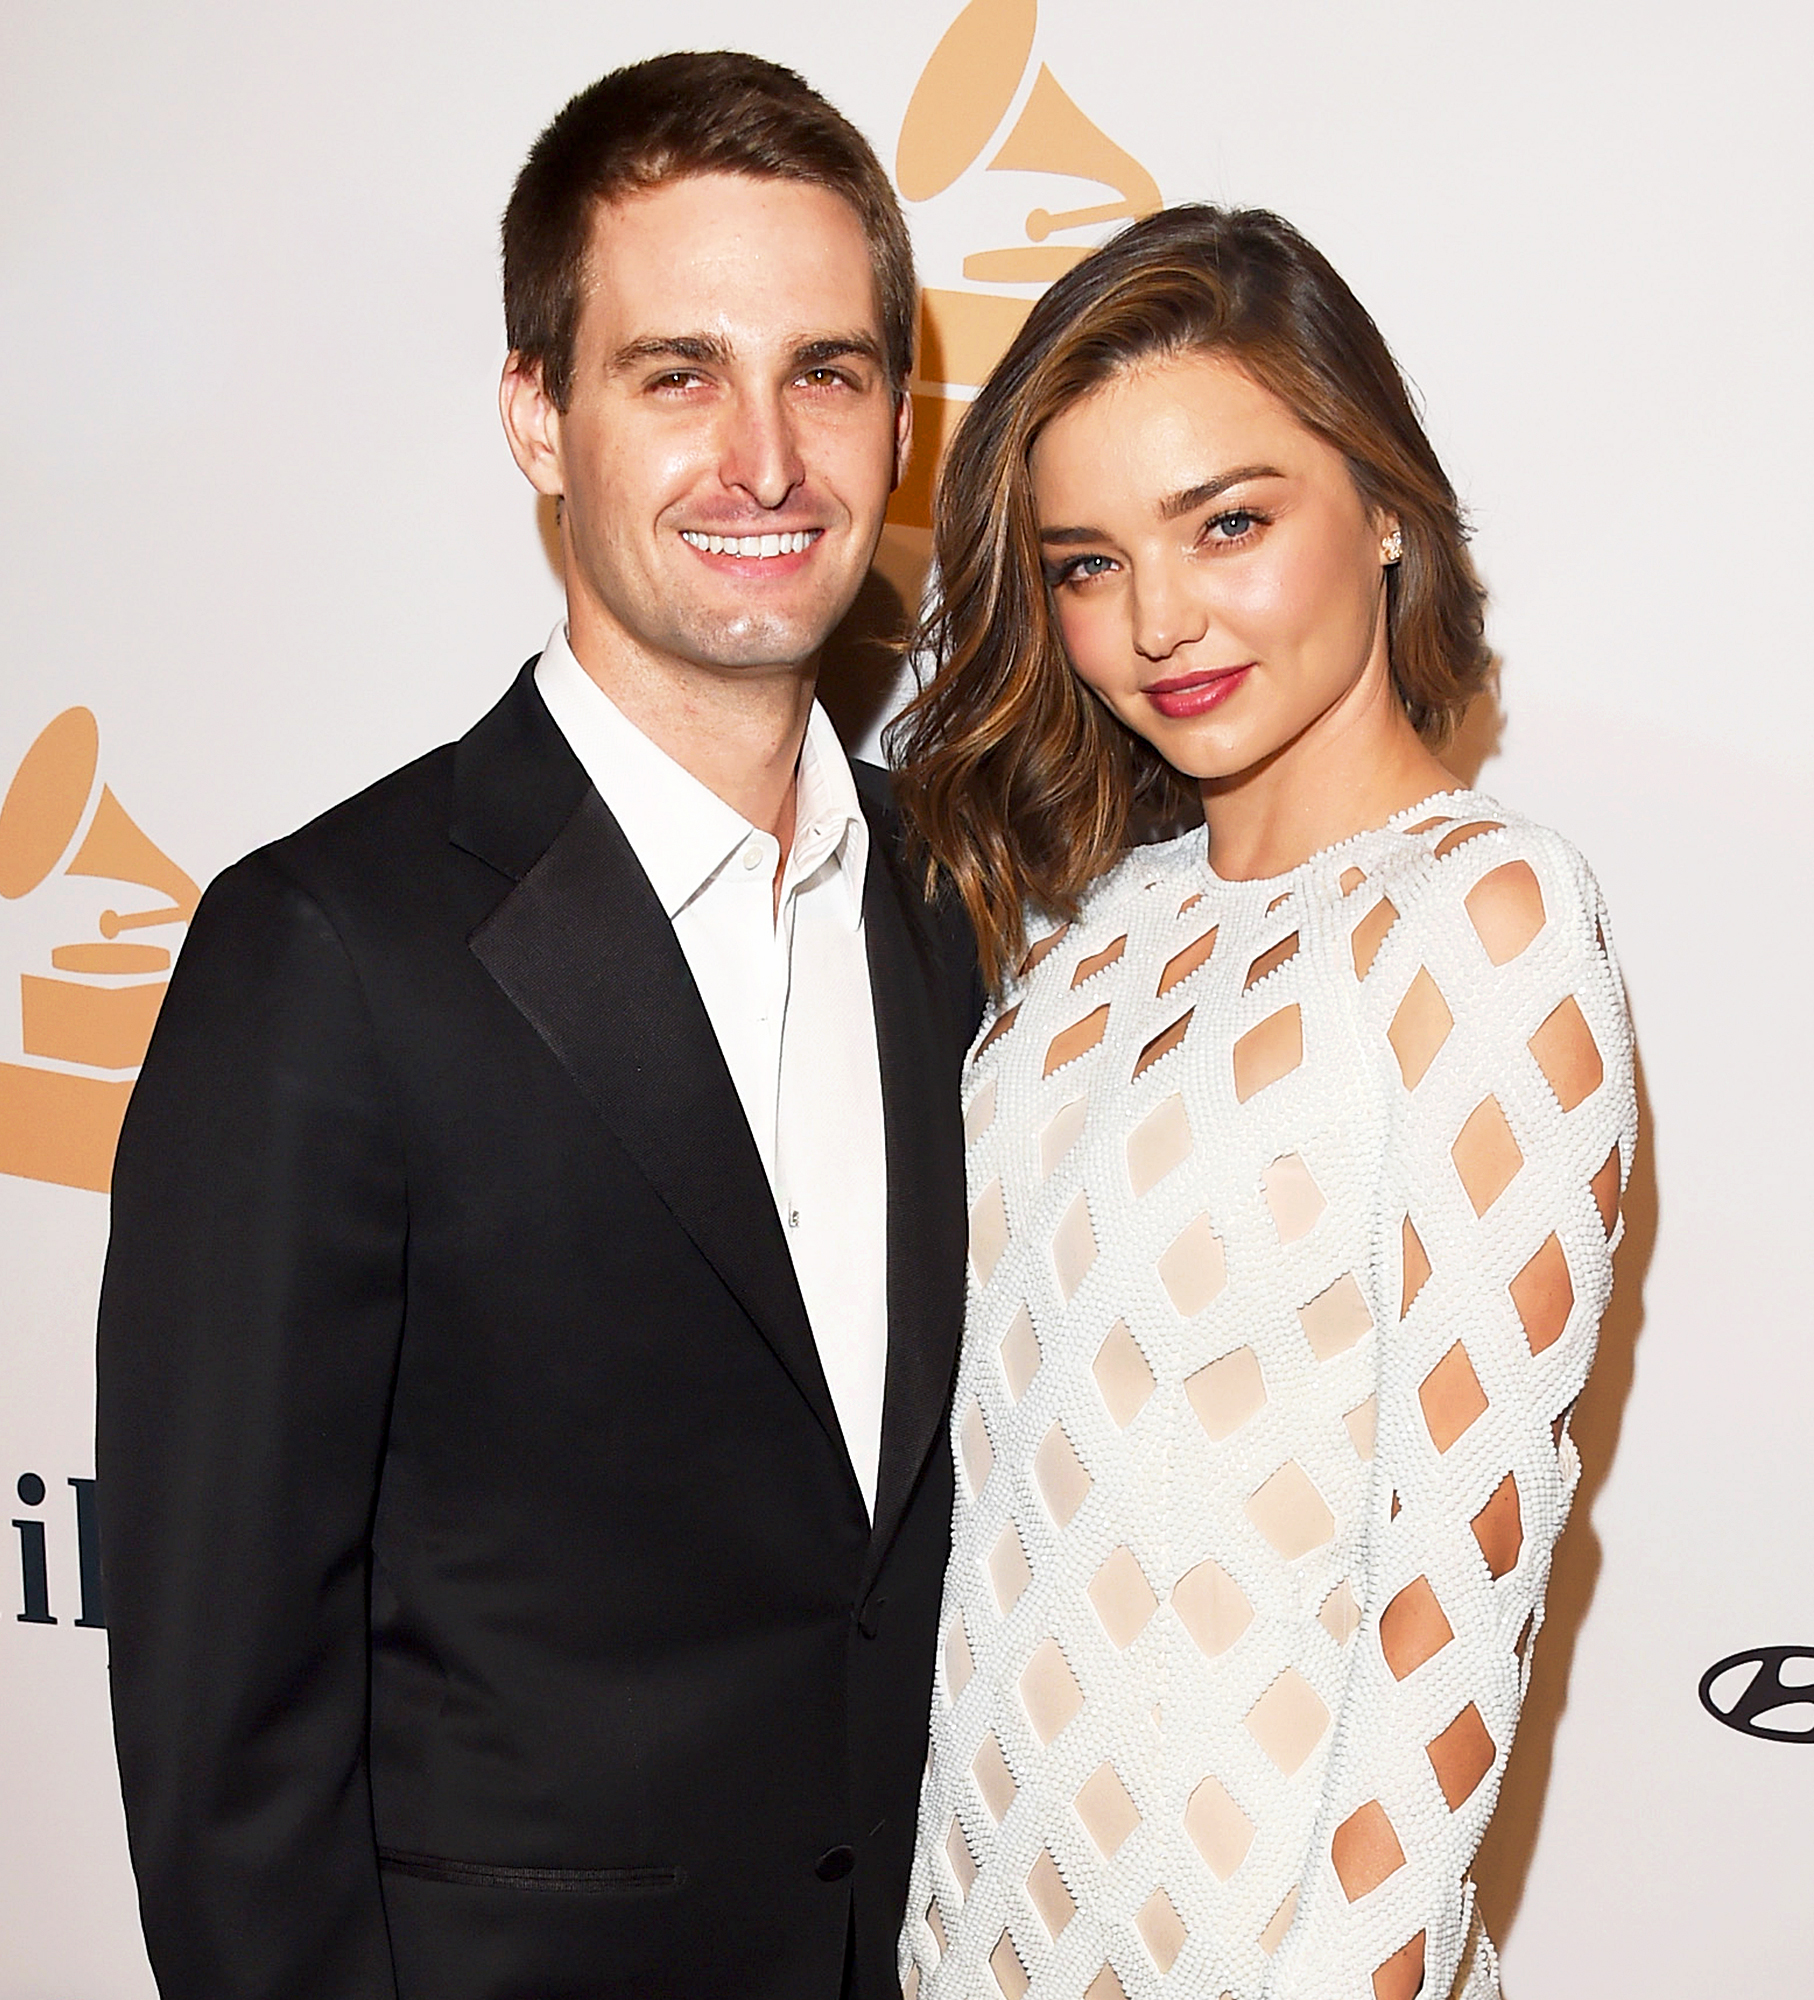 Evan Spiegel and Miranda Kerr attend the 2016 Pre-Grammy Gala and Salute to Industry Icons at The Beverly Hilton Hotel in Beverly Hills.